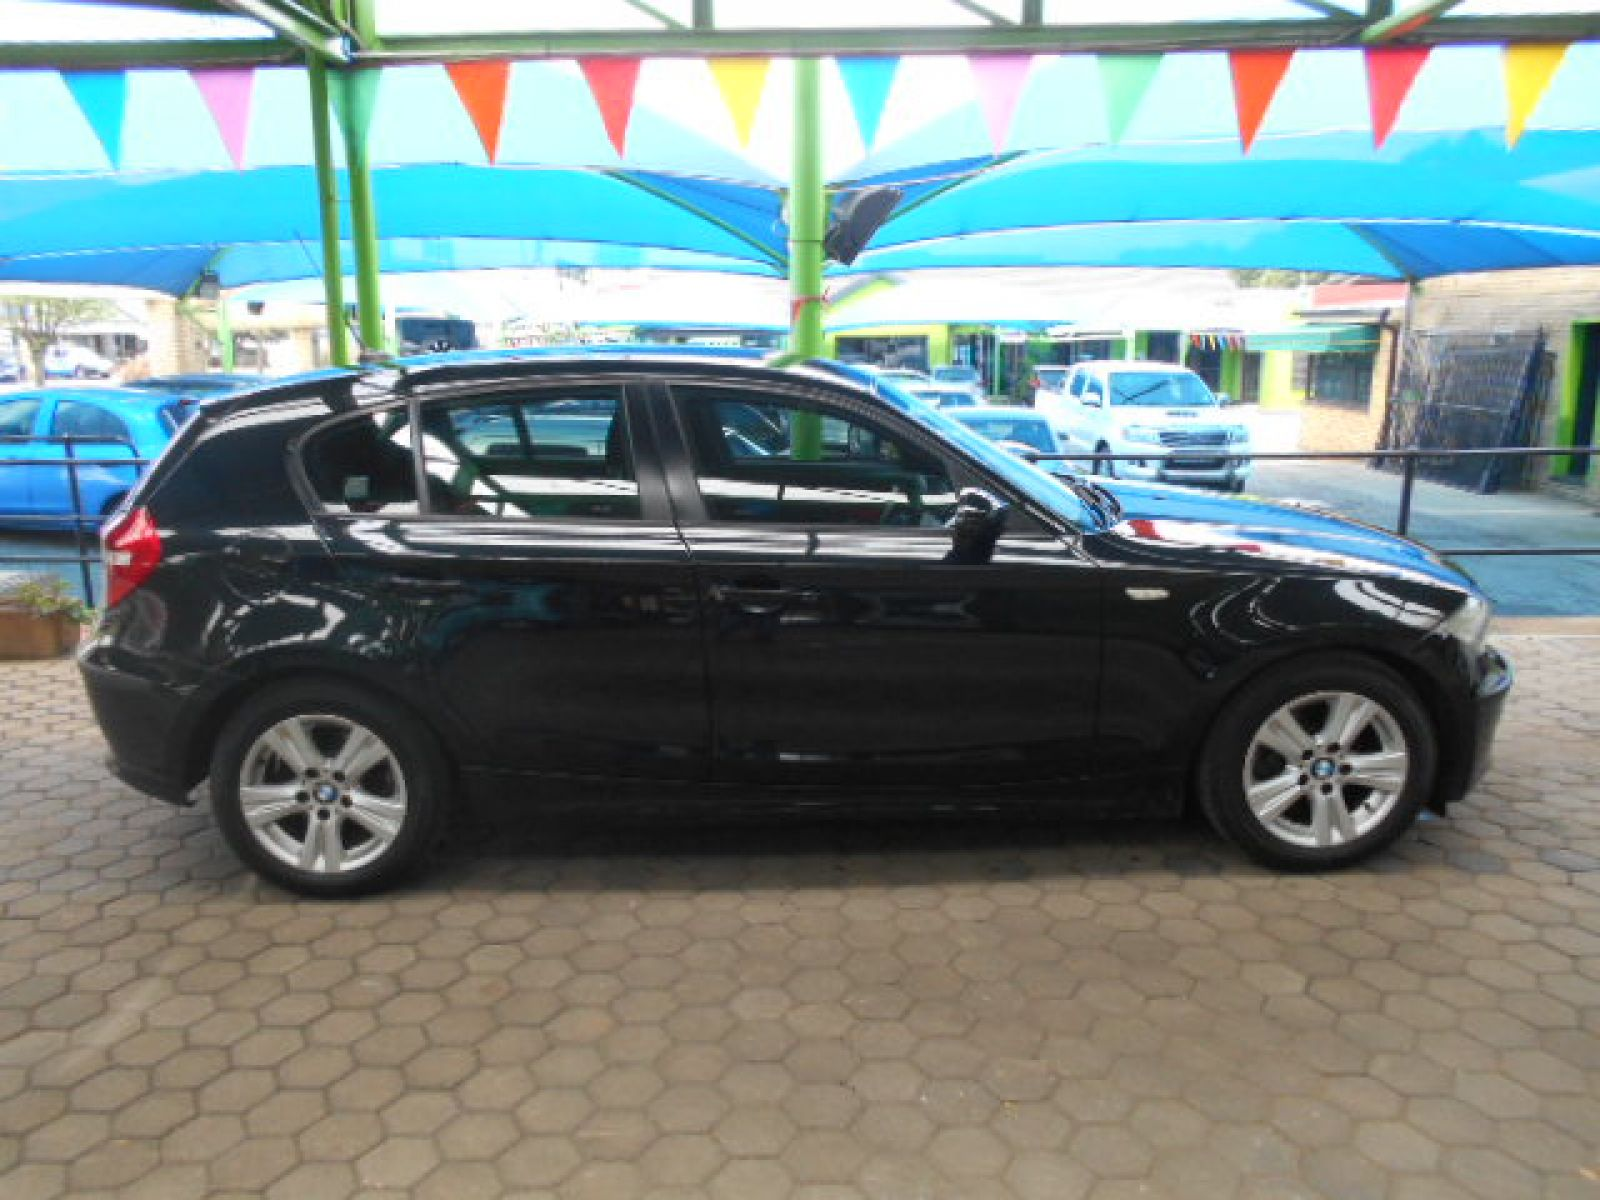 Bmw Cars For Sale Kilokor Motors